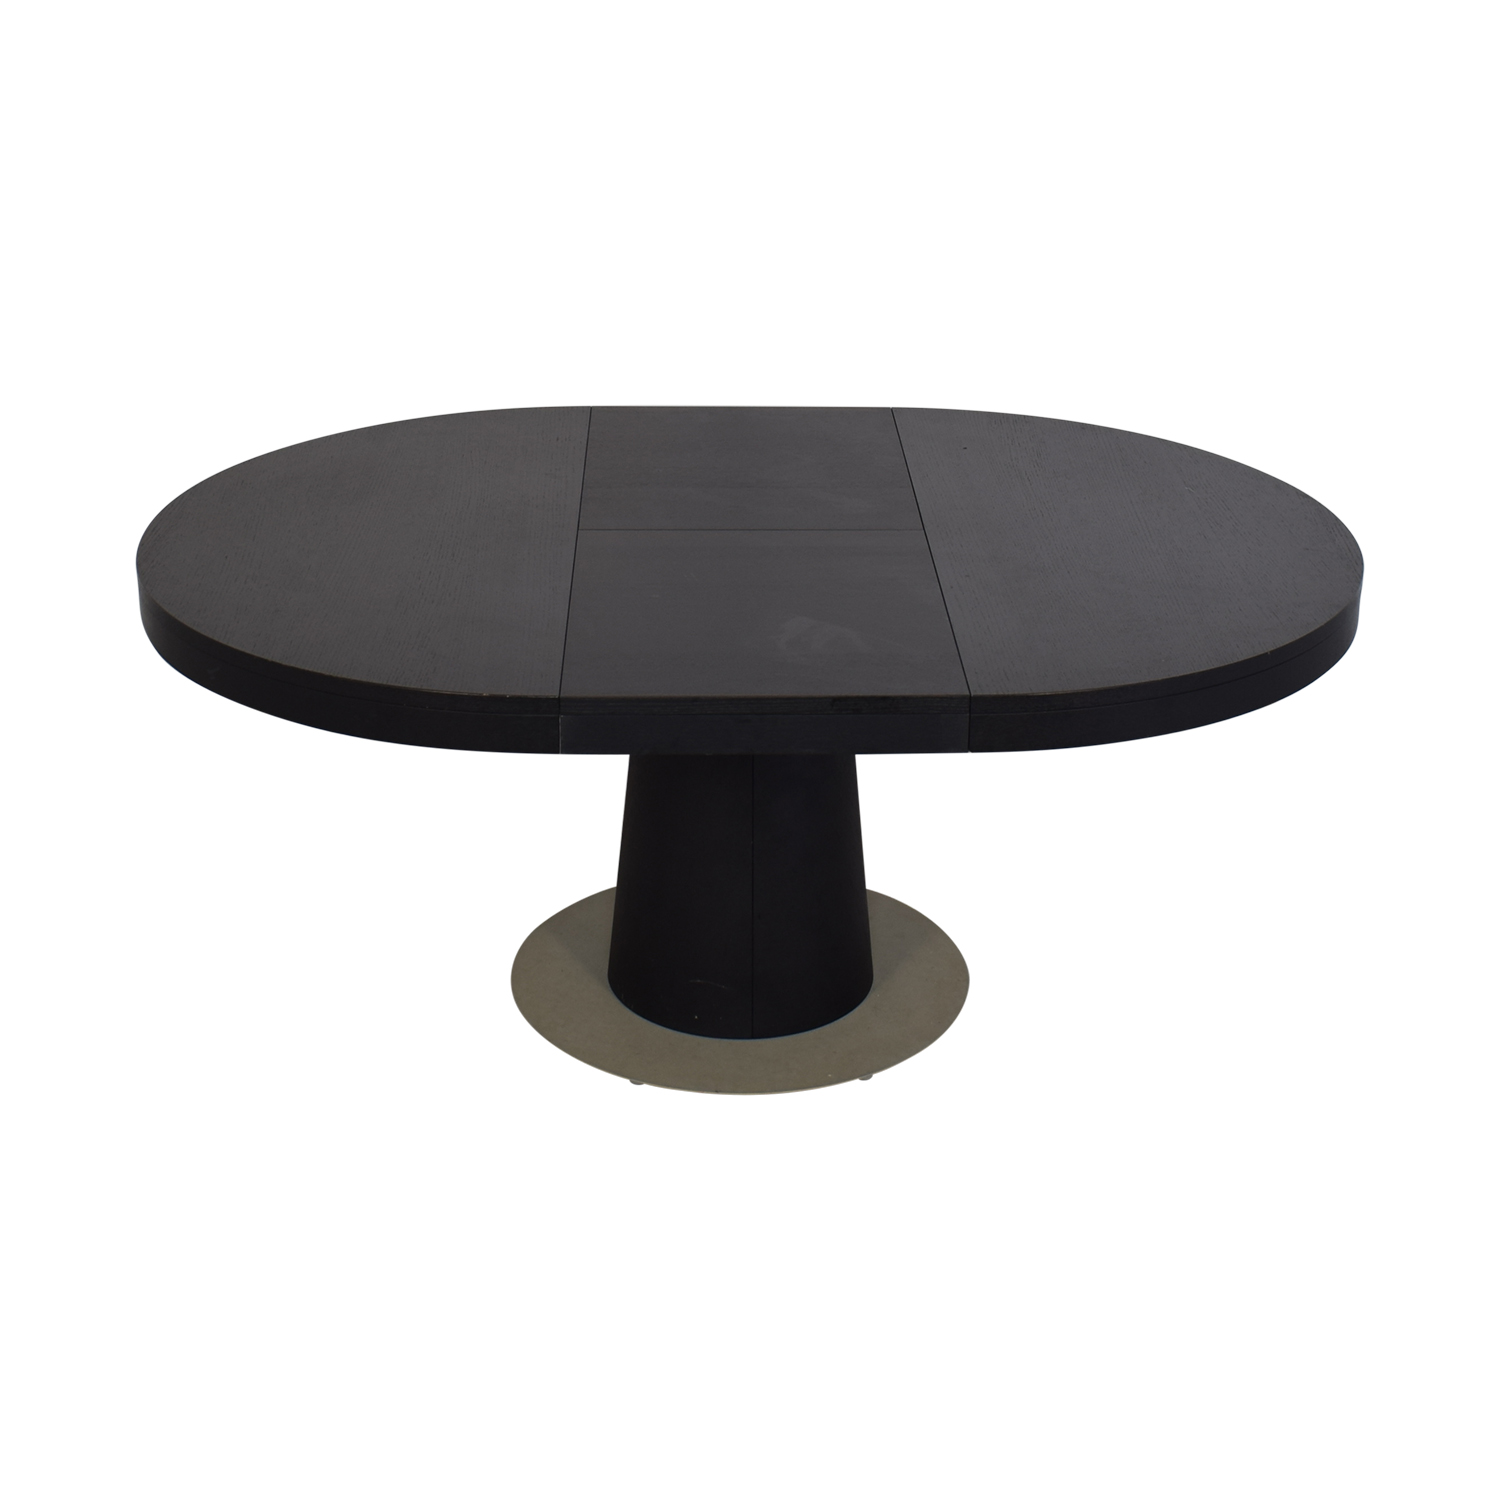 BoConcept BoConcept Granada Extendable Dining Table for sale